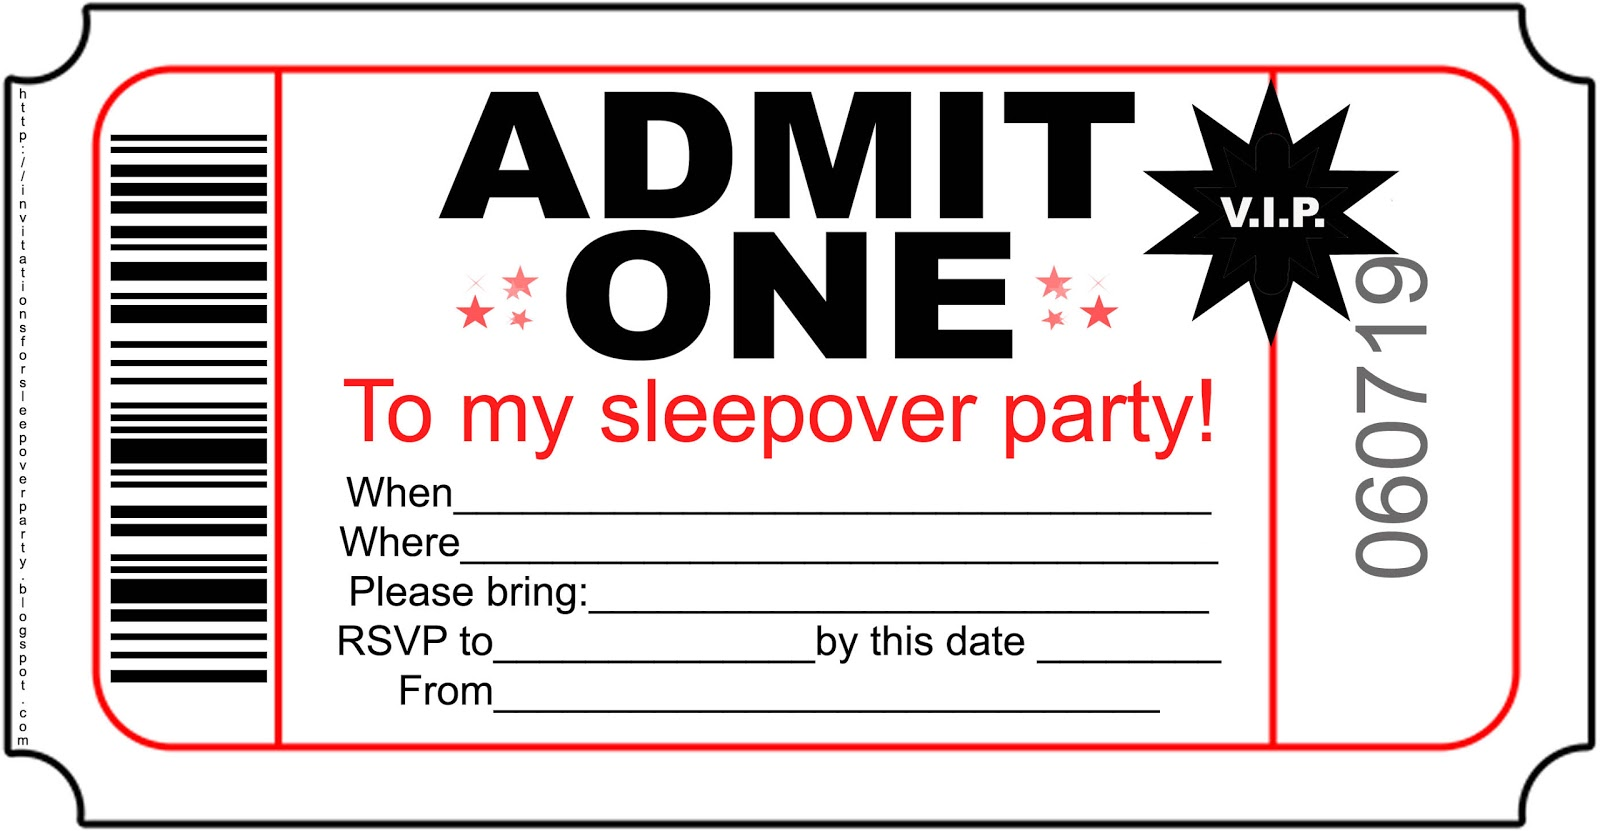 Free Printable Slumber Party Invitation Templates as well Movie Night Template besides 1 as well Printable Ticket Invitations An Admit One Invite as well 1. on oscar flyer template